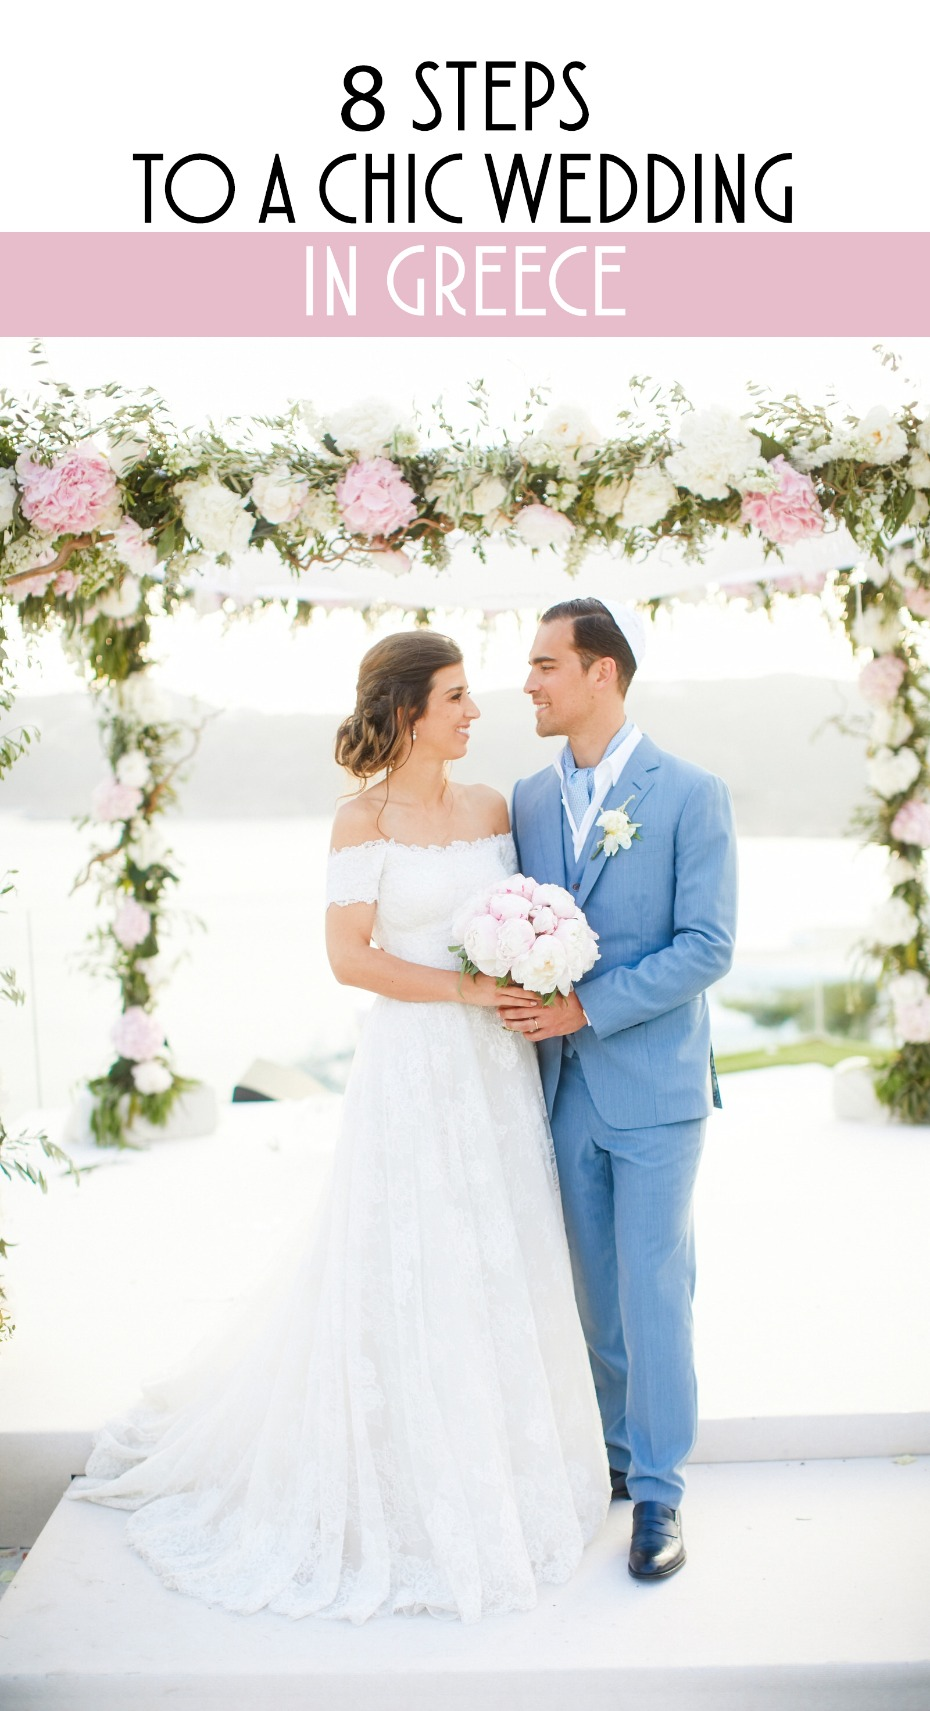 8 steps to a chic wedding in greece